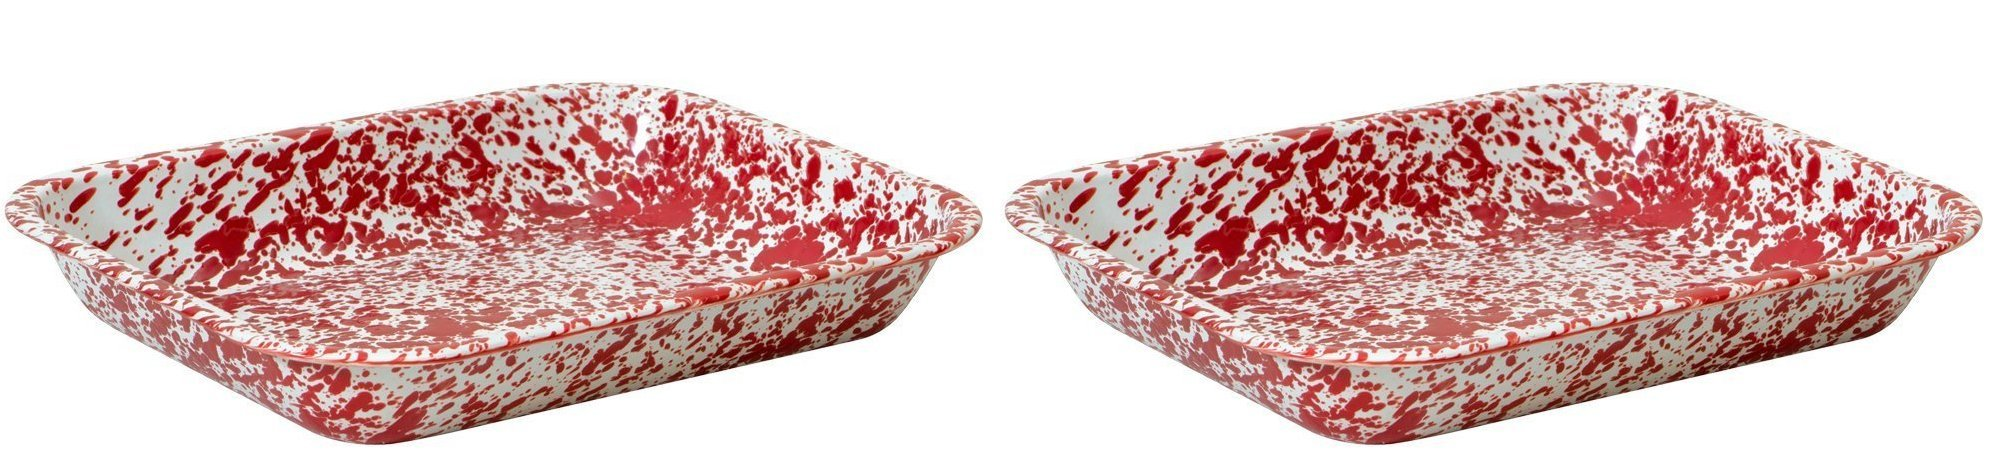 Crow Canyon - Set of 2 Enamelware Large 3 Quart Roasting Pans (Red Marble)